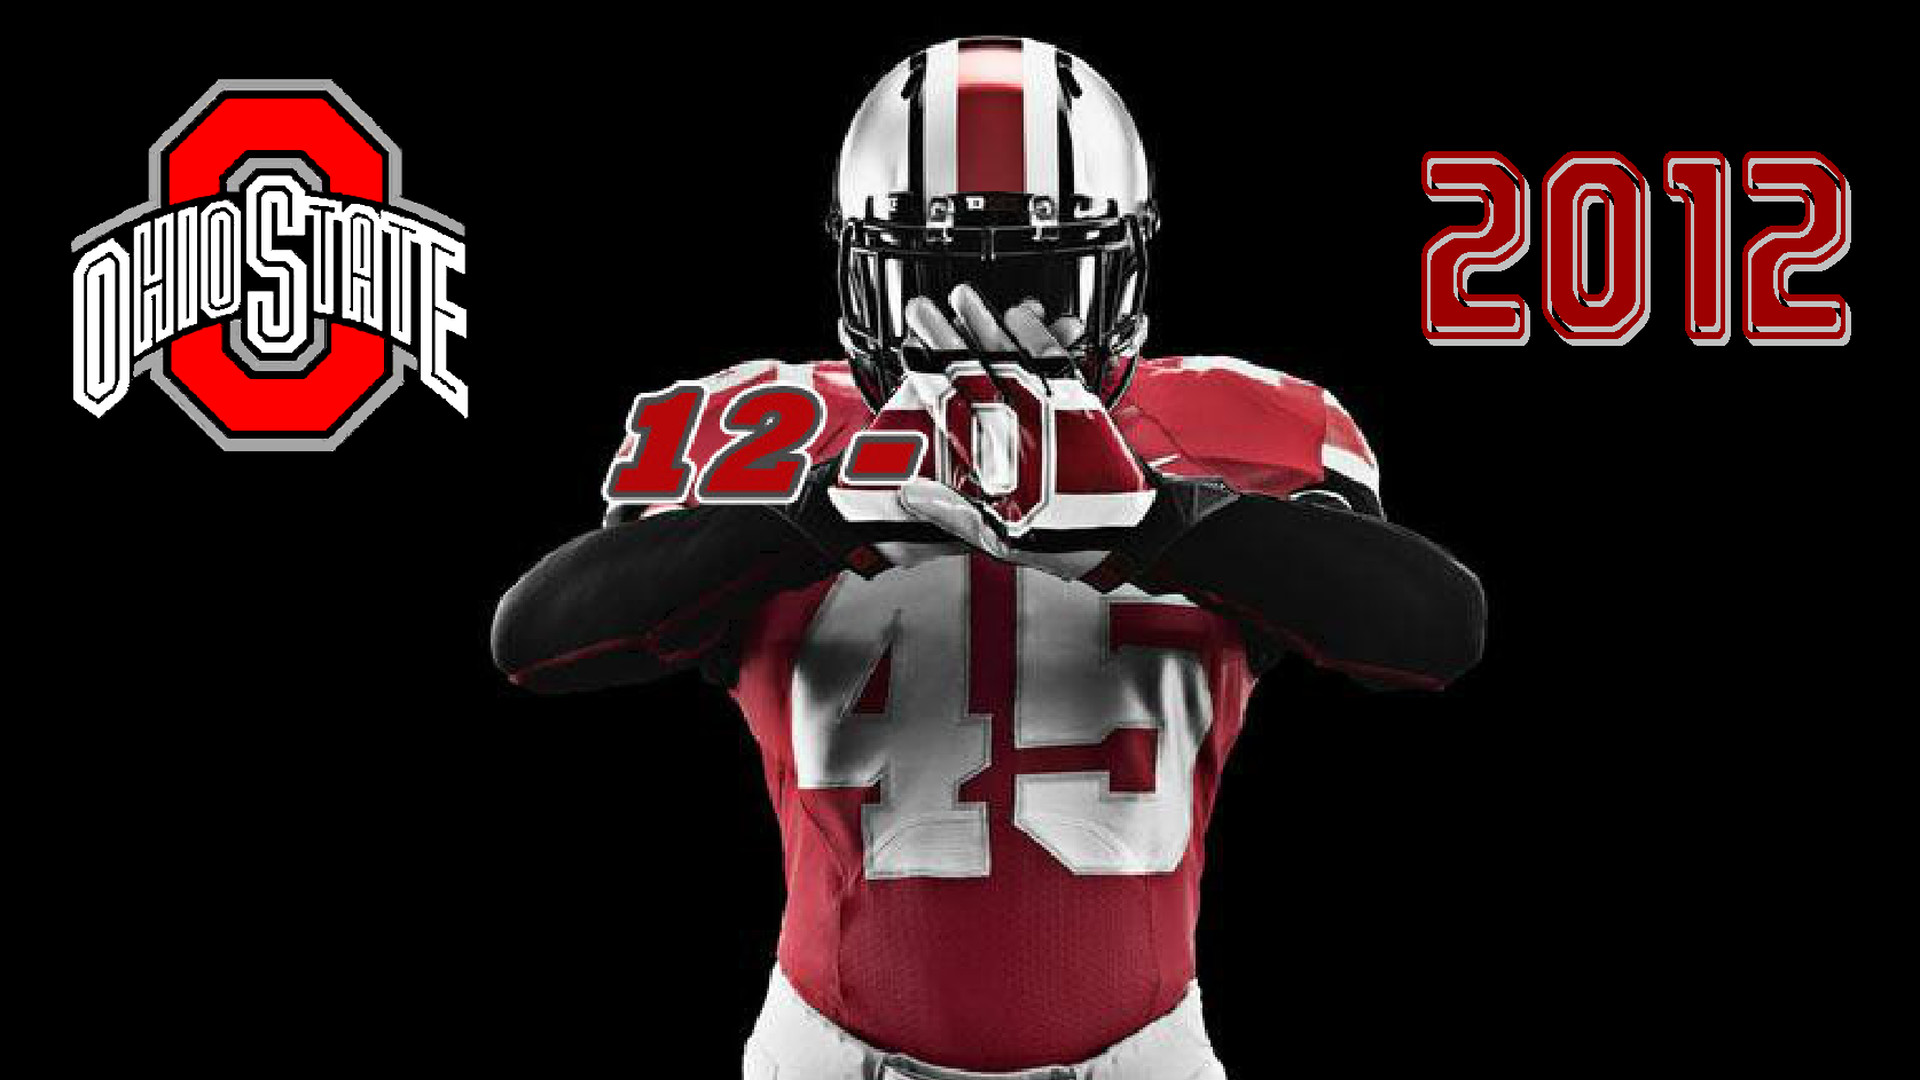 … Great Selection of Ohio State Football Wallpapers Best 1920×1080 Football  Wallpaper We Provide to